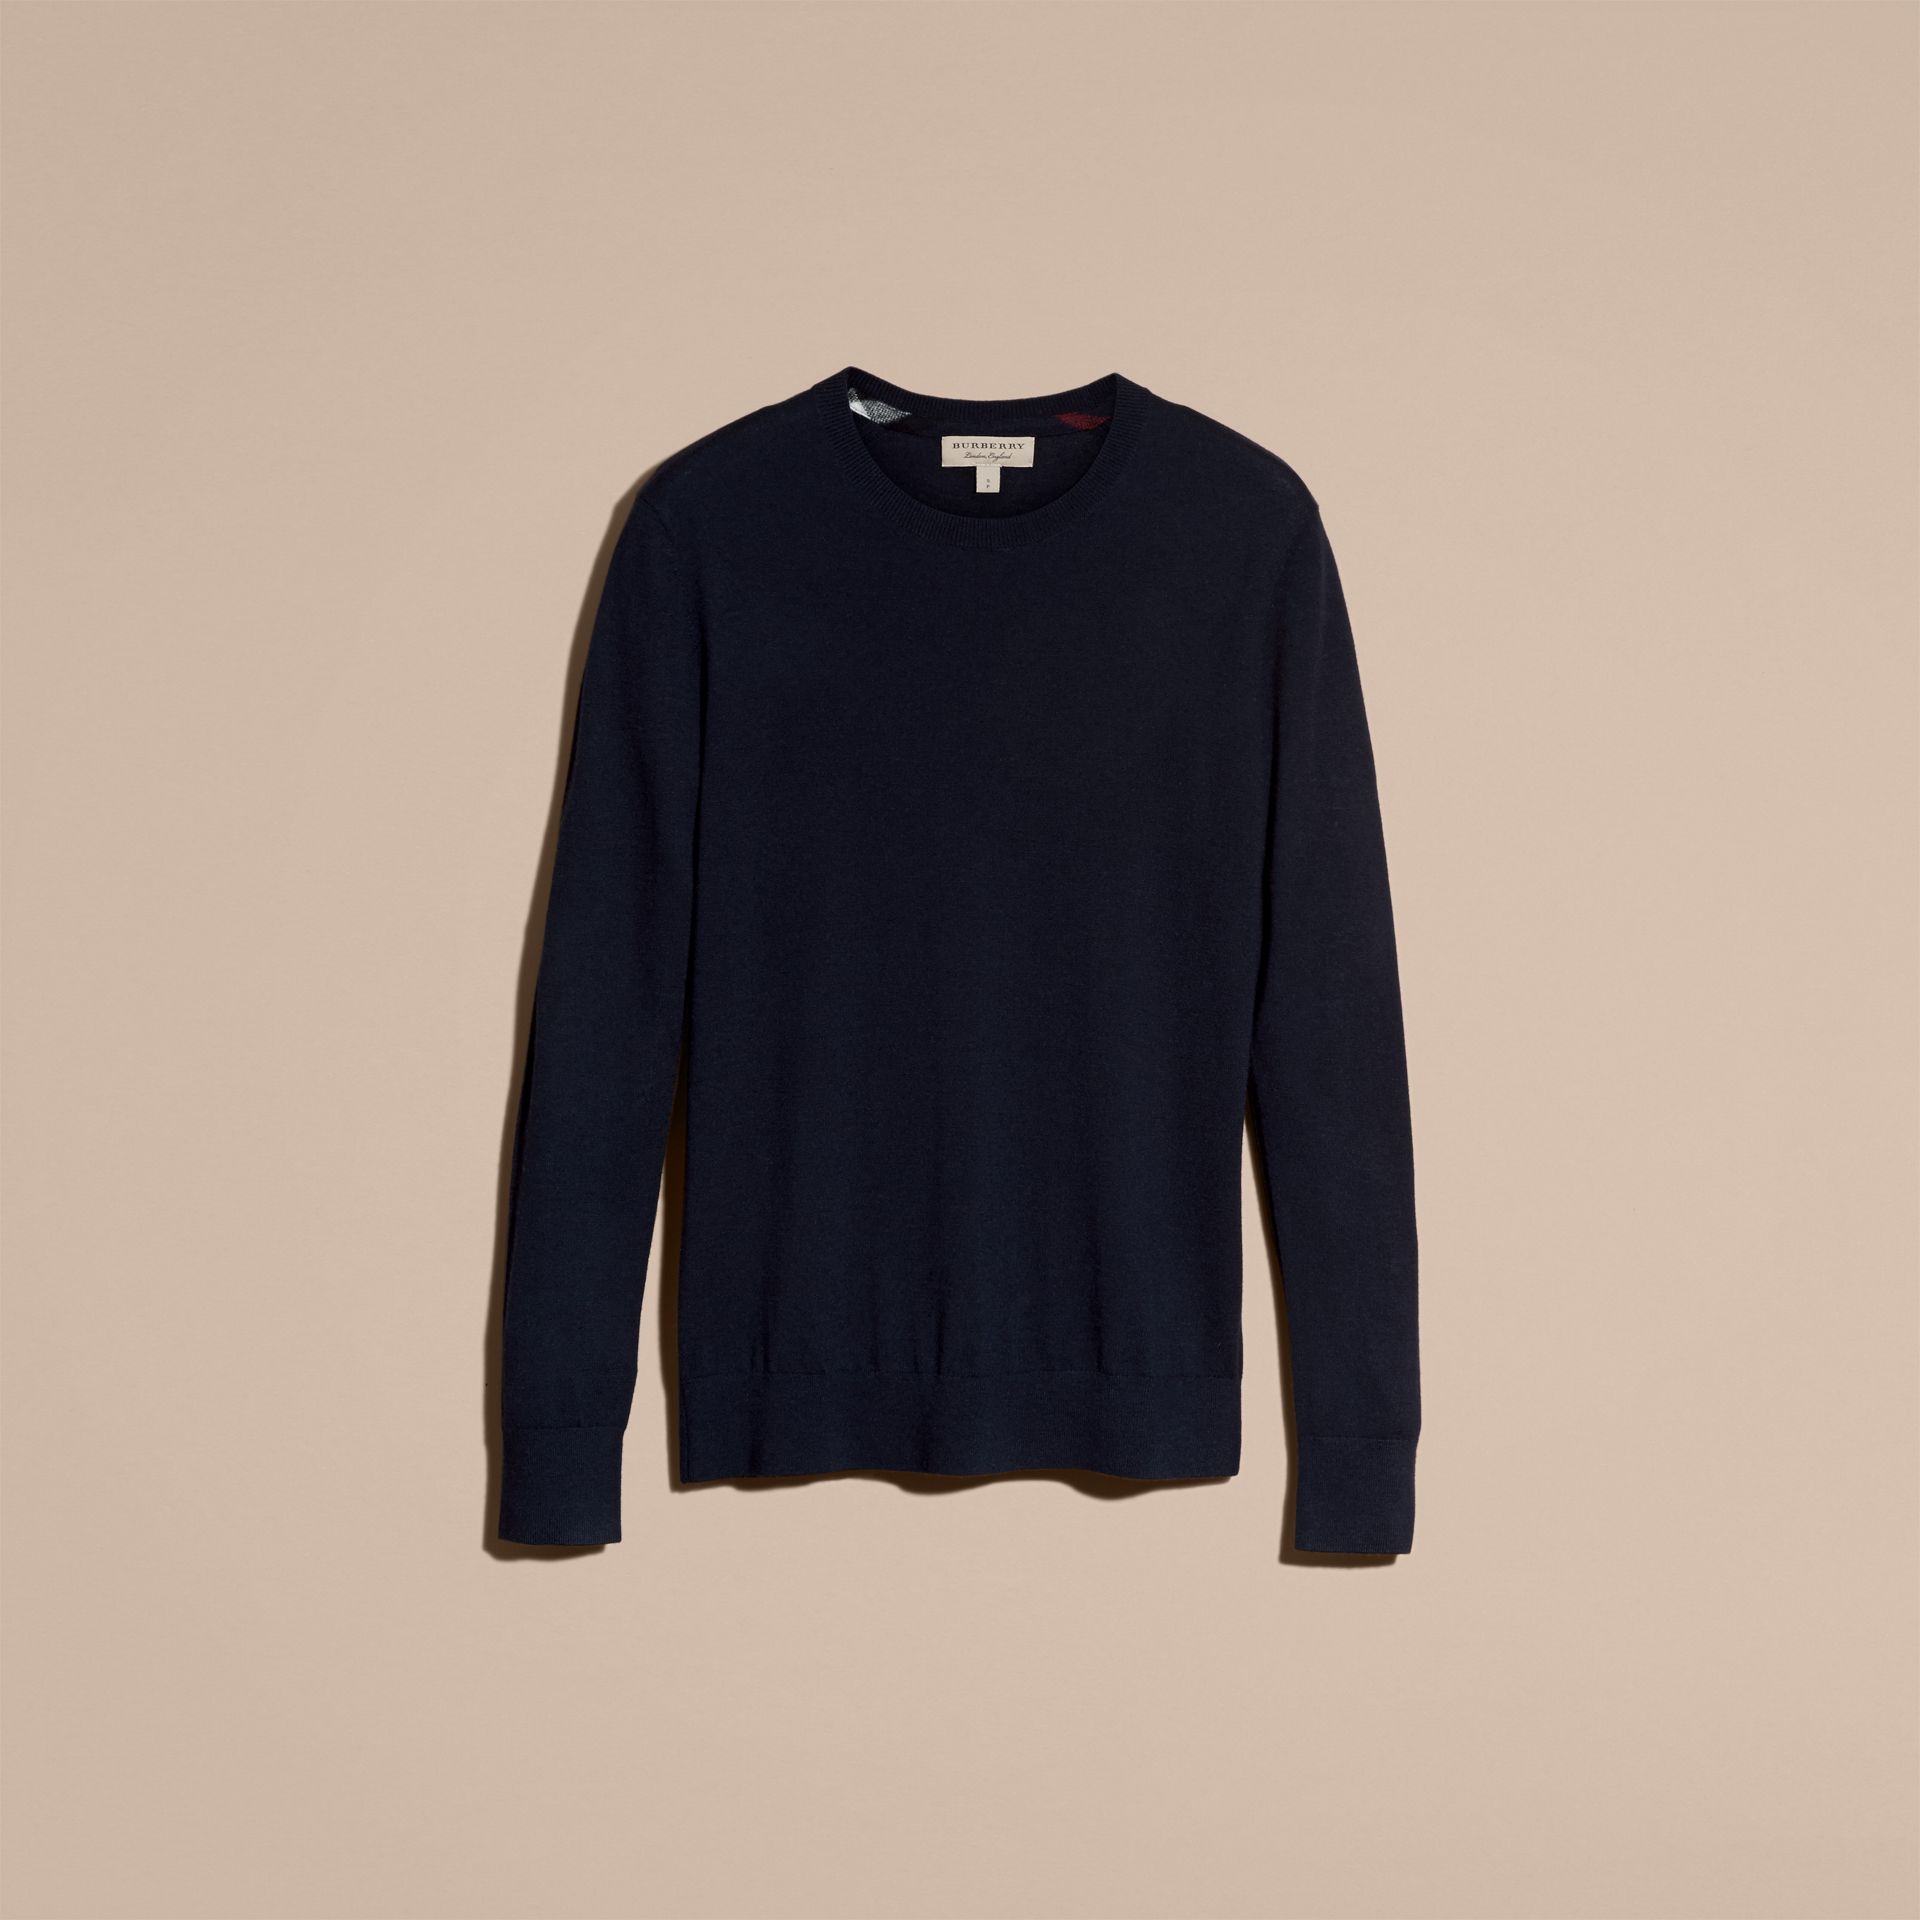 Check Jacquard Detail Cashmere Sweater in Navy - Men | Burberry United Kingdom - gallery image 4